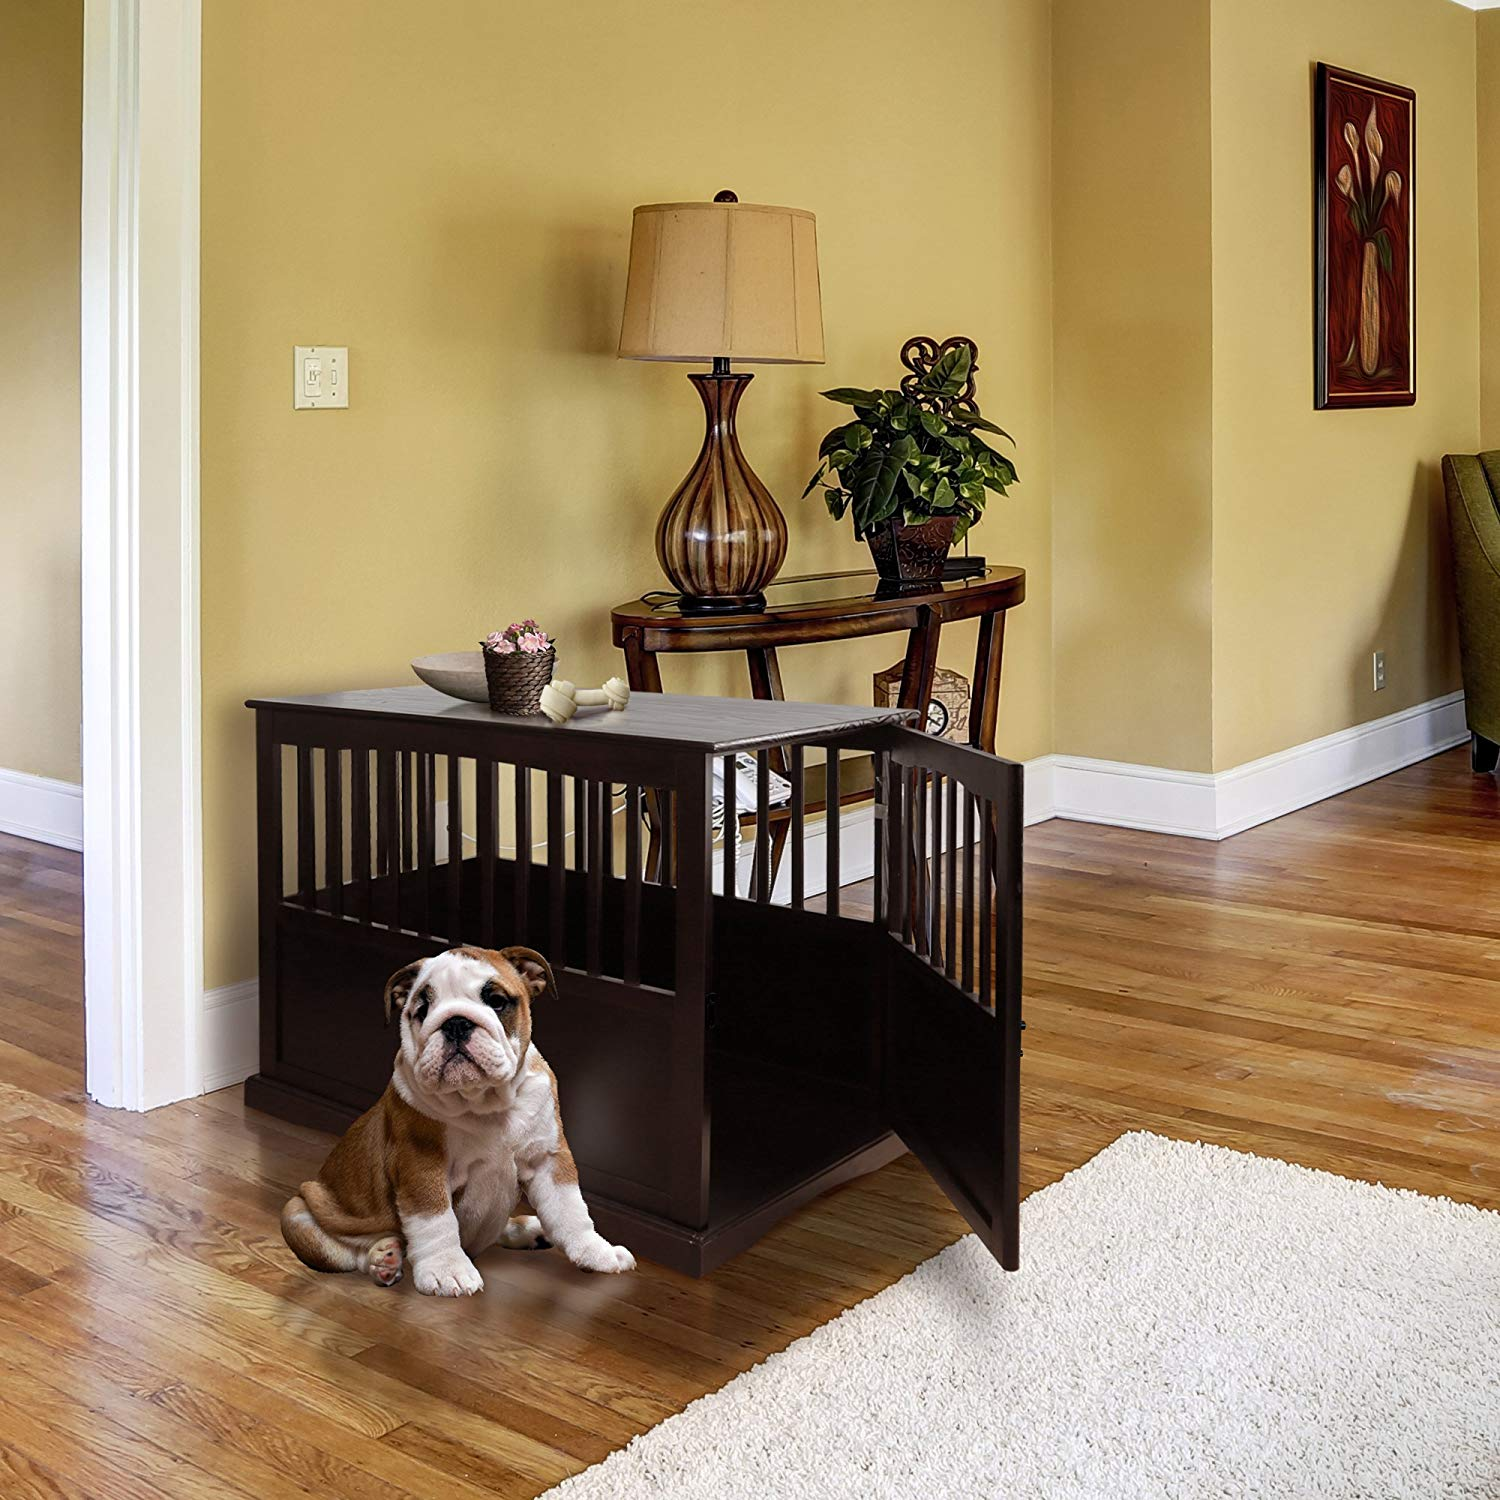 shan pet crate end table inch kitchen dining homesense cabinets side tables under leon furniture coffee glass top for thomasville bridges bedroom and next leather sofas patio